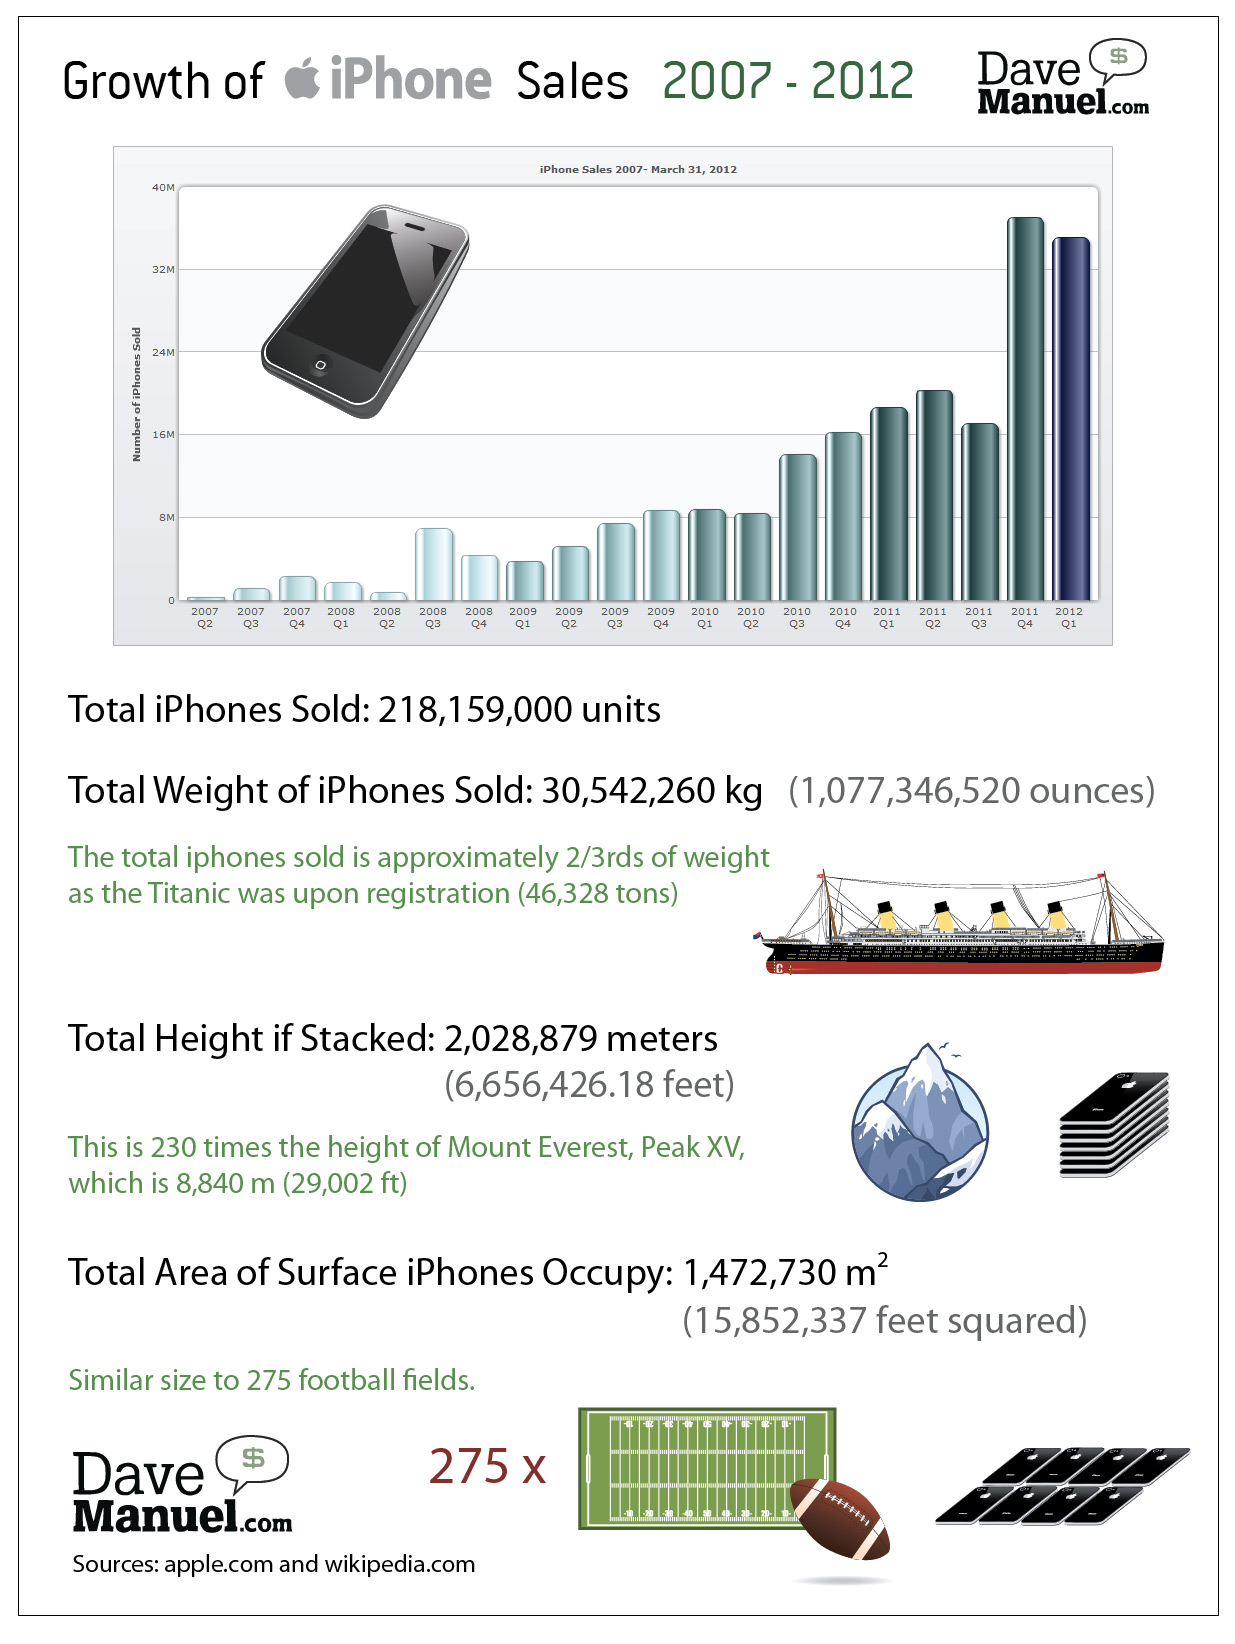 Growth of Apple iPhone Sales - World Wide - 2007 - 2012 - Illlustration - Infographic